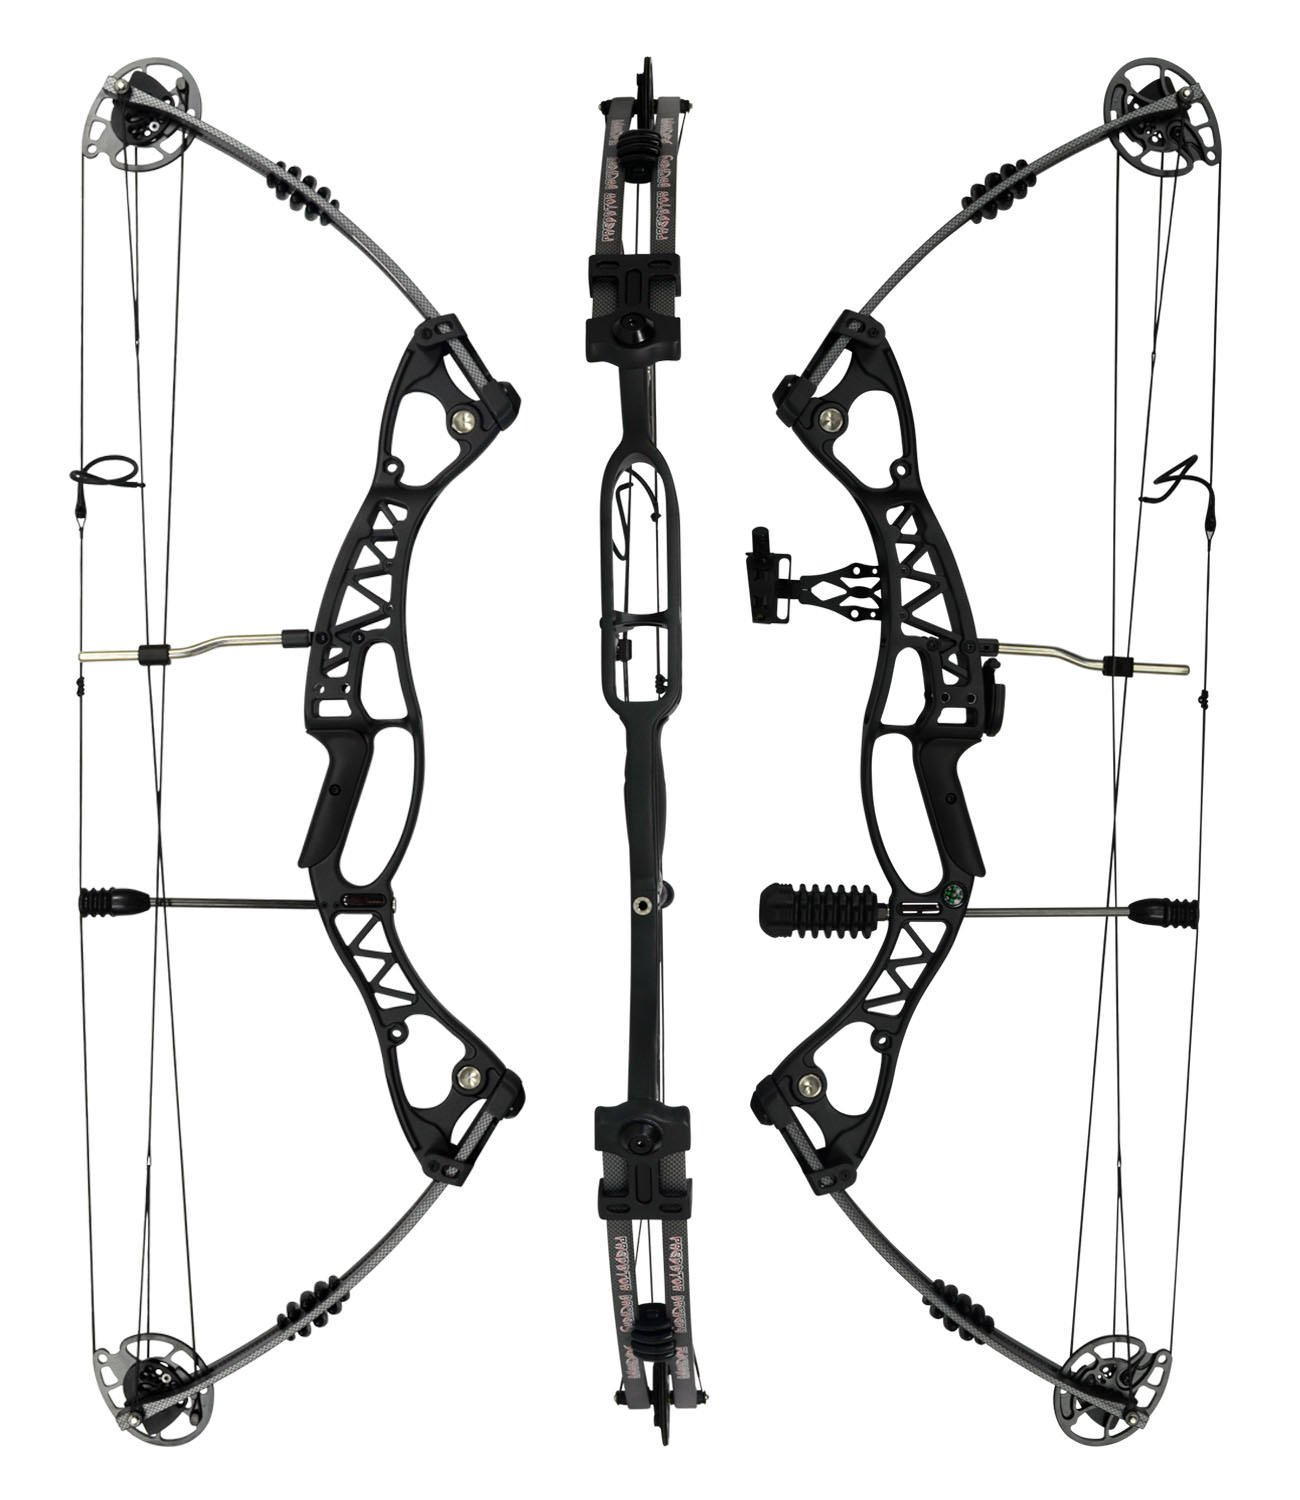 Compound Bows Online Shopping For Clothing Shoes